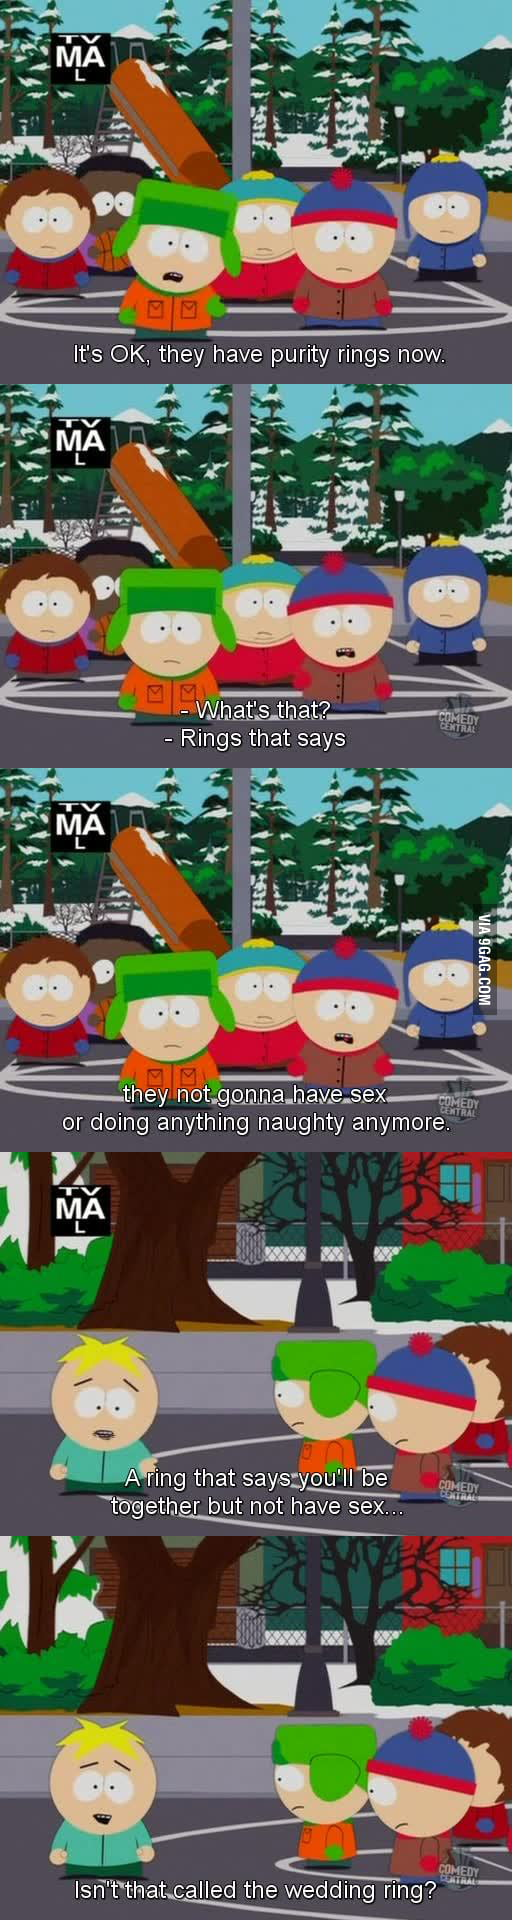 This is why I love south park